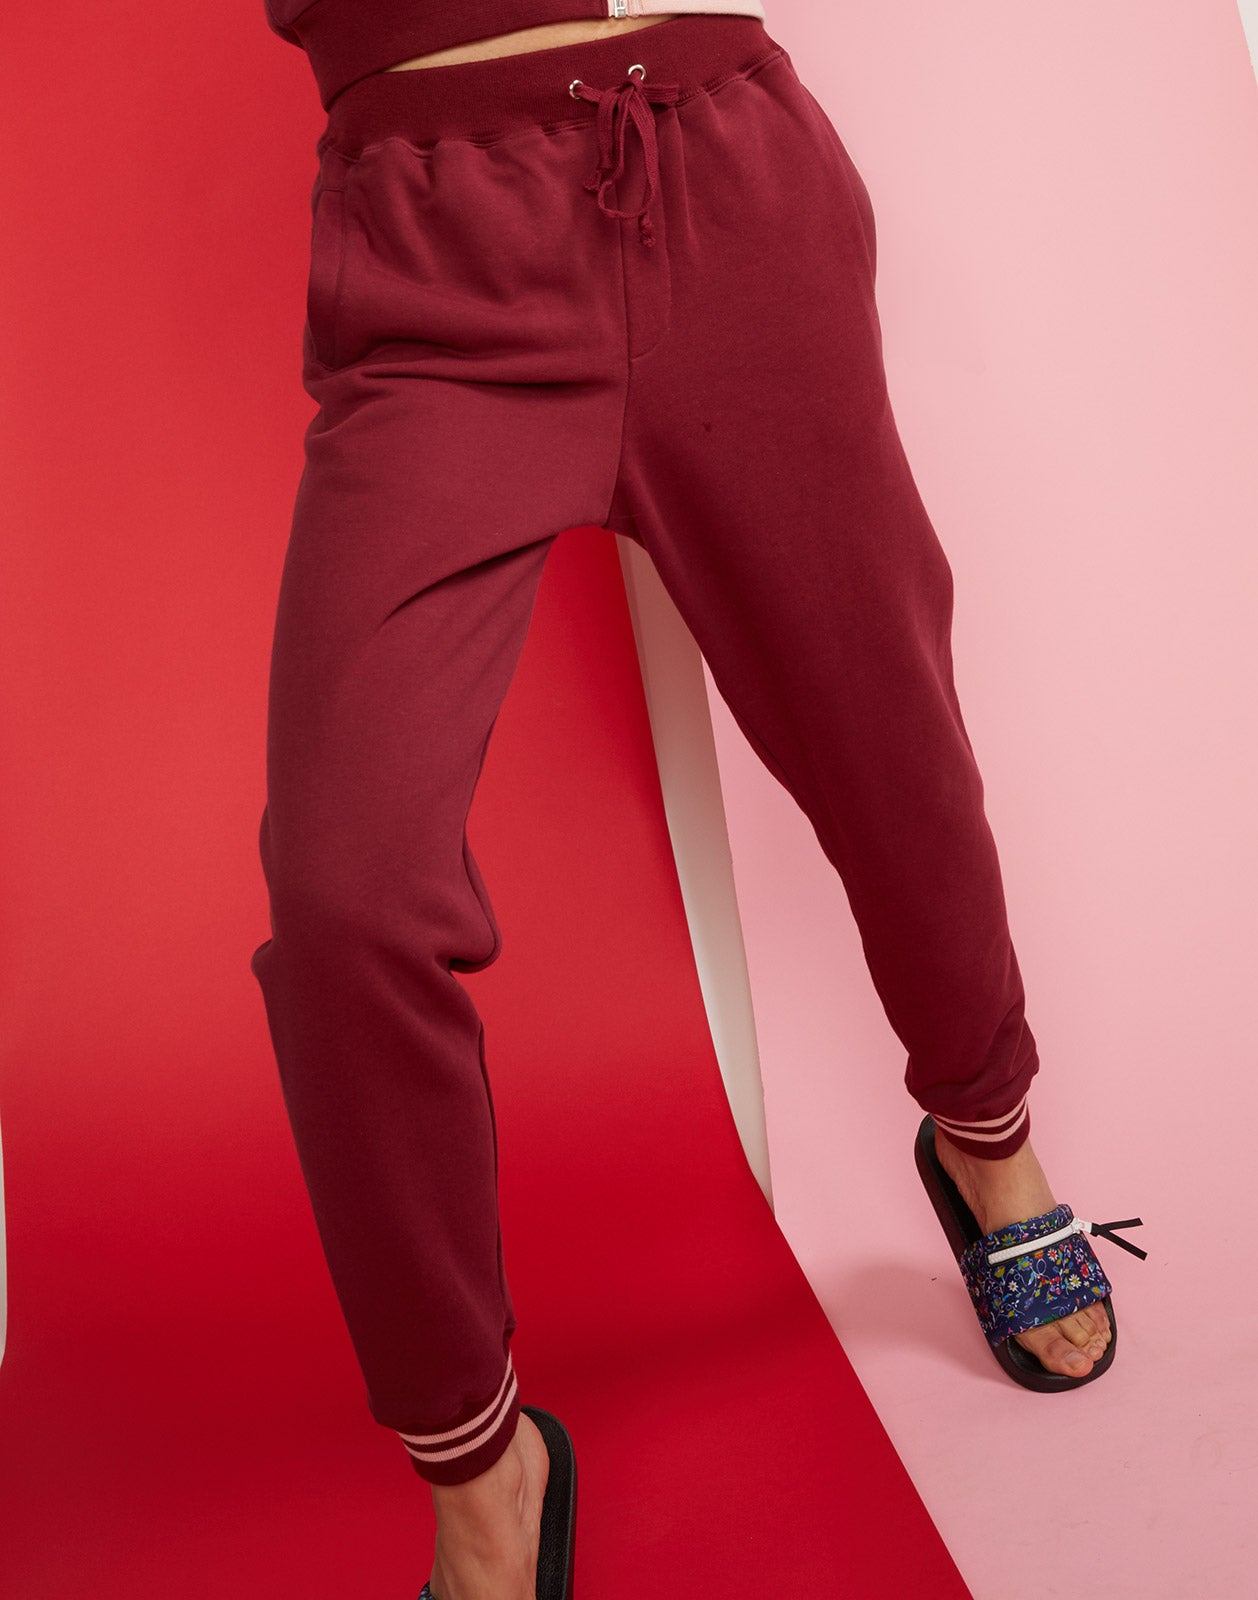 Close detail view of burgundy cotton jogger sweatpants with drawstring waist.